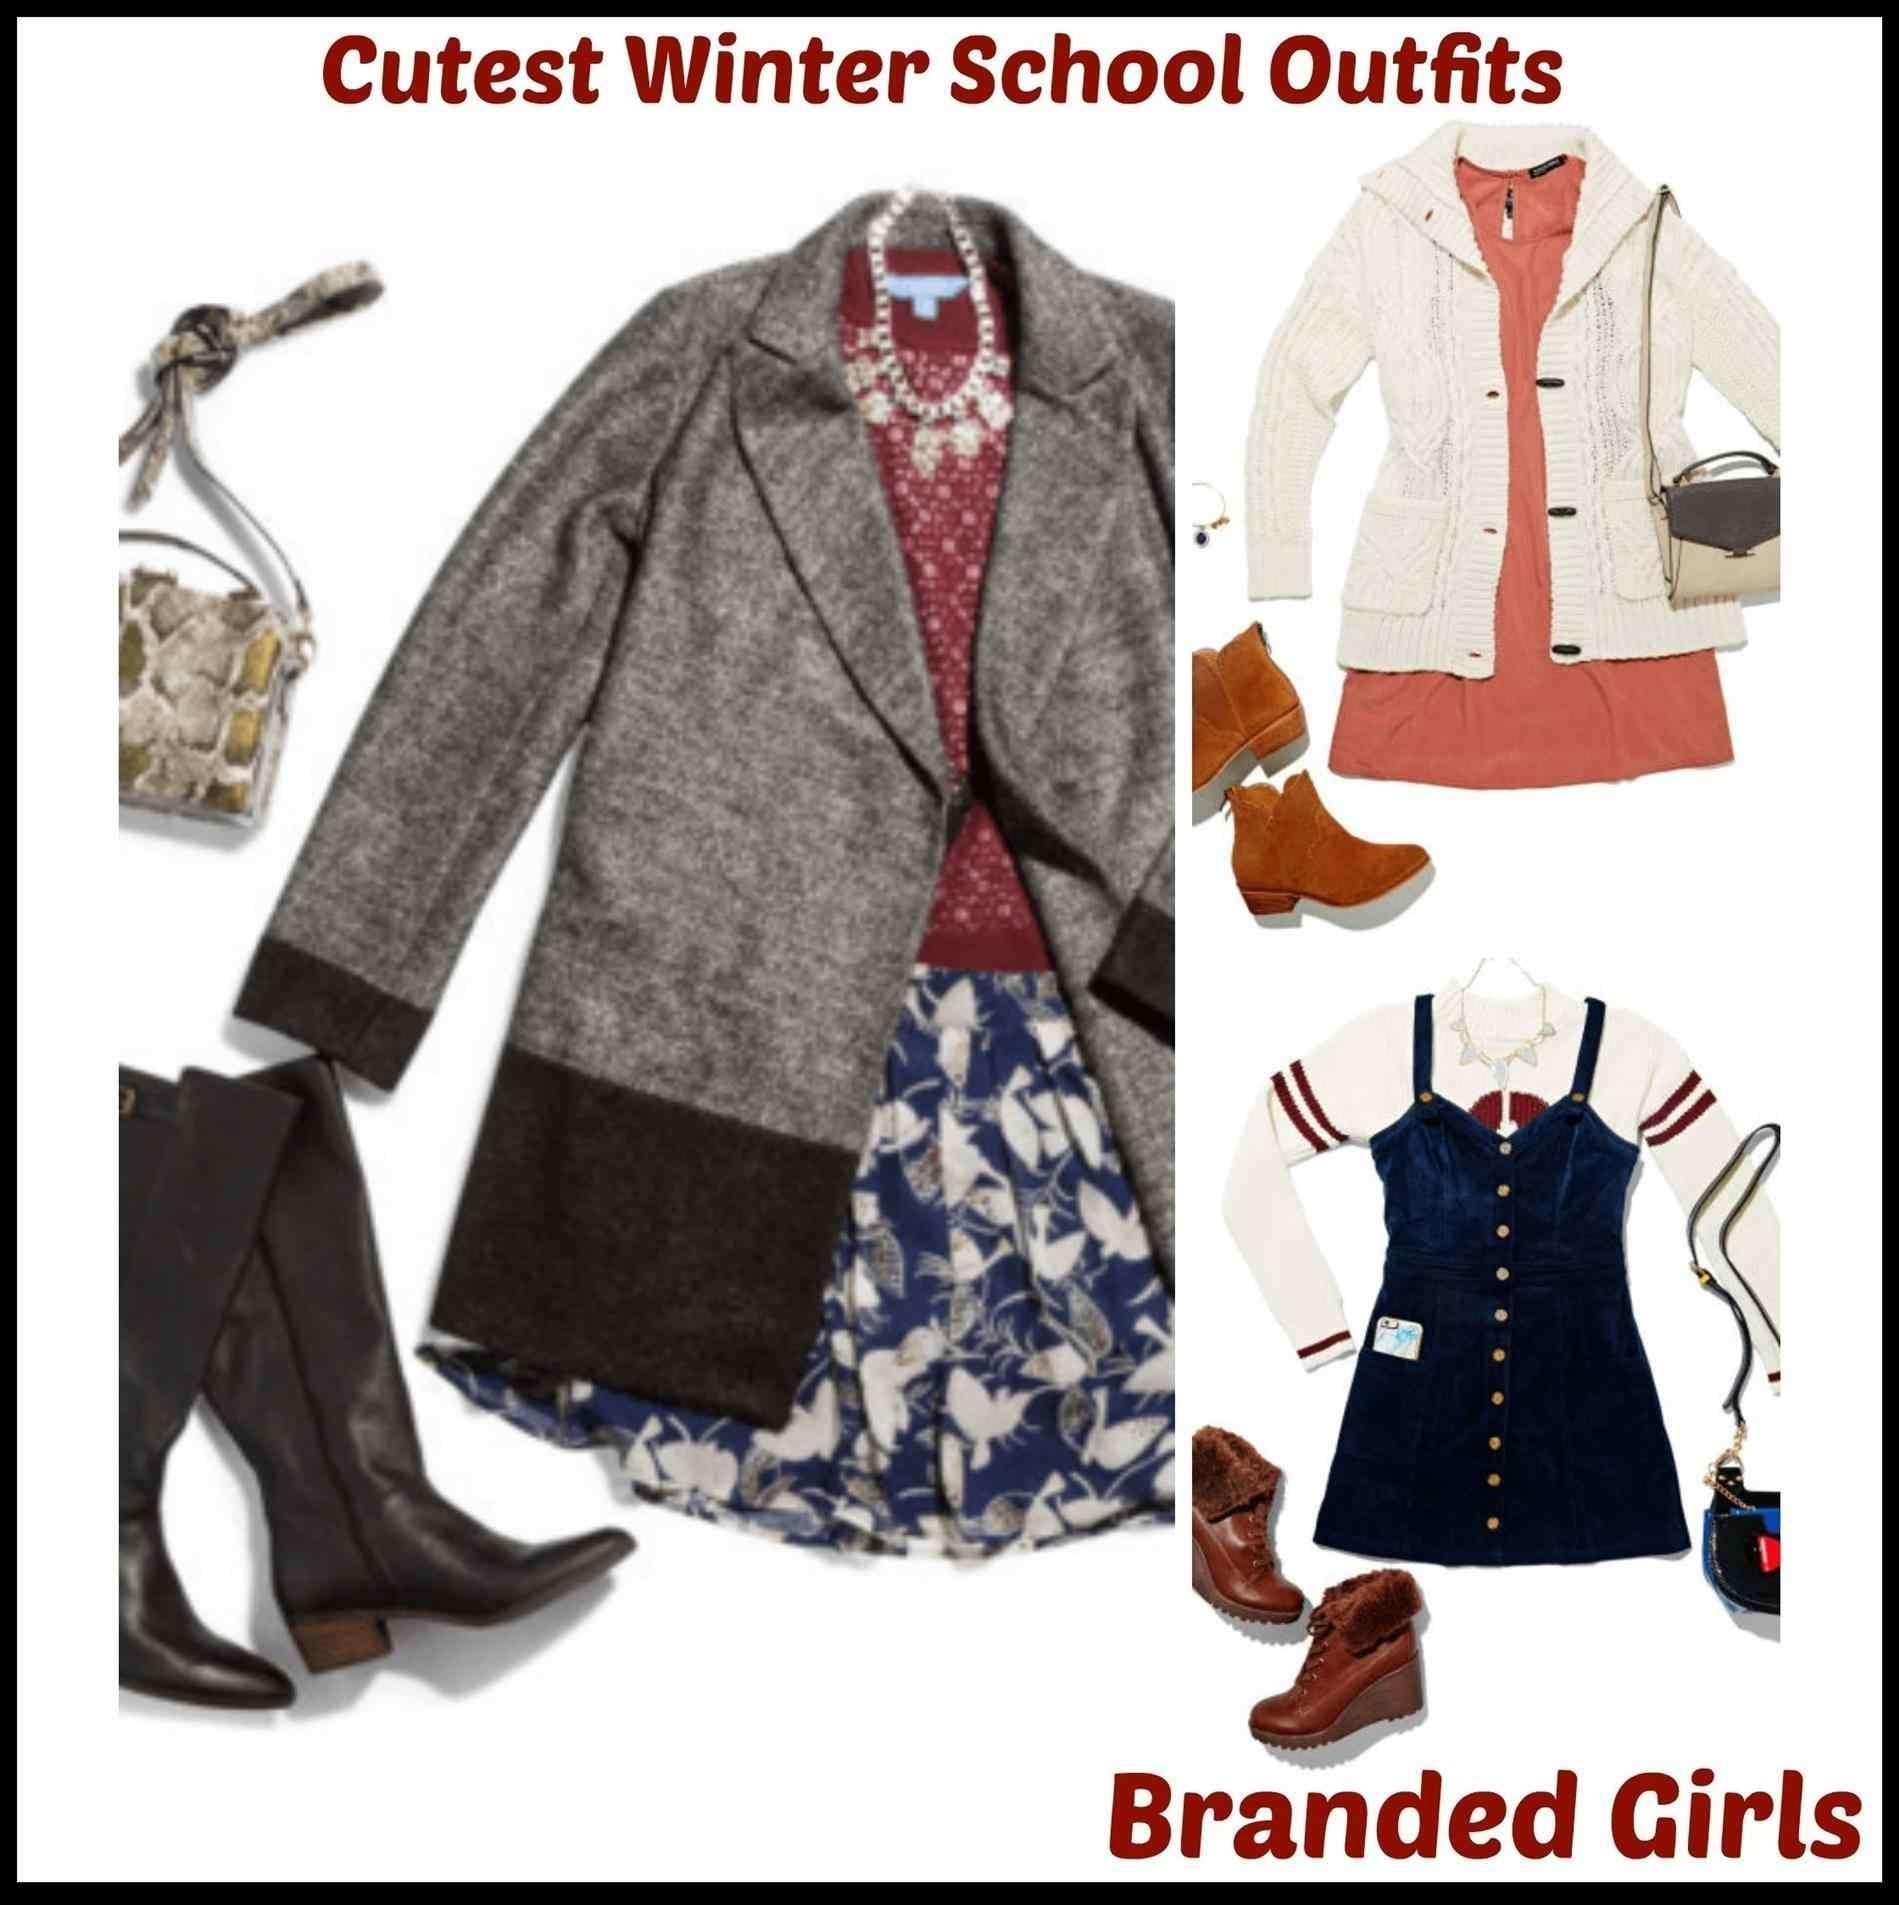 10 Nice Winter Outfit Ideas For School session back cute vintage outfits for school to mini outfit ideas 2020